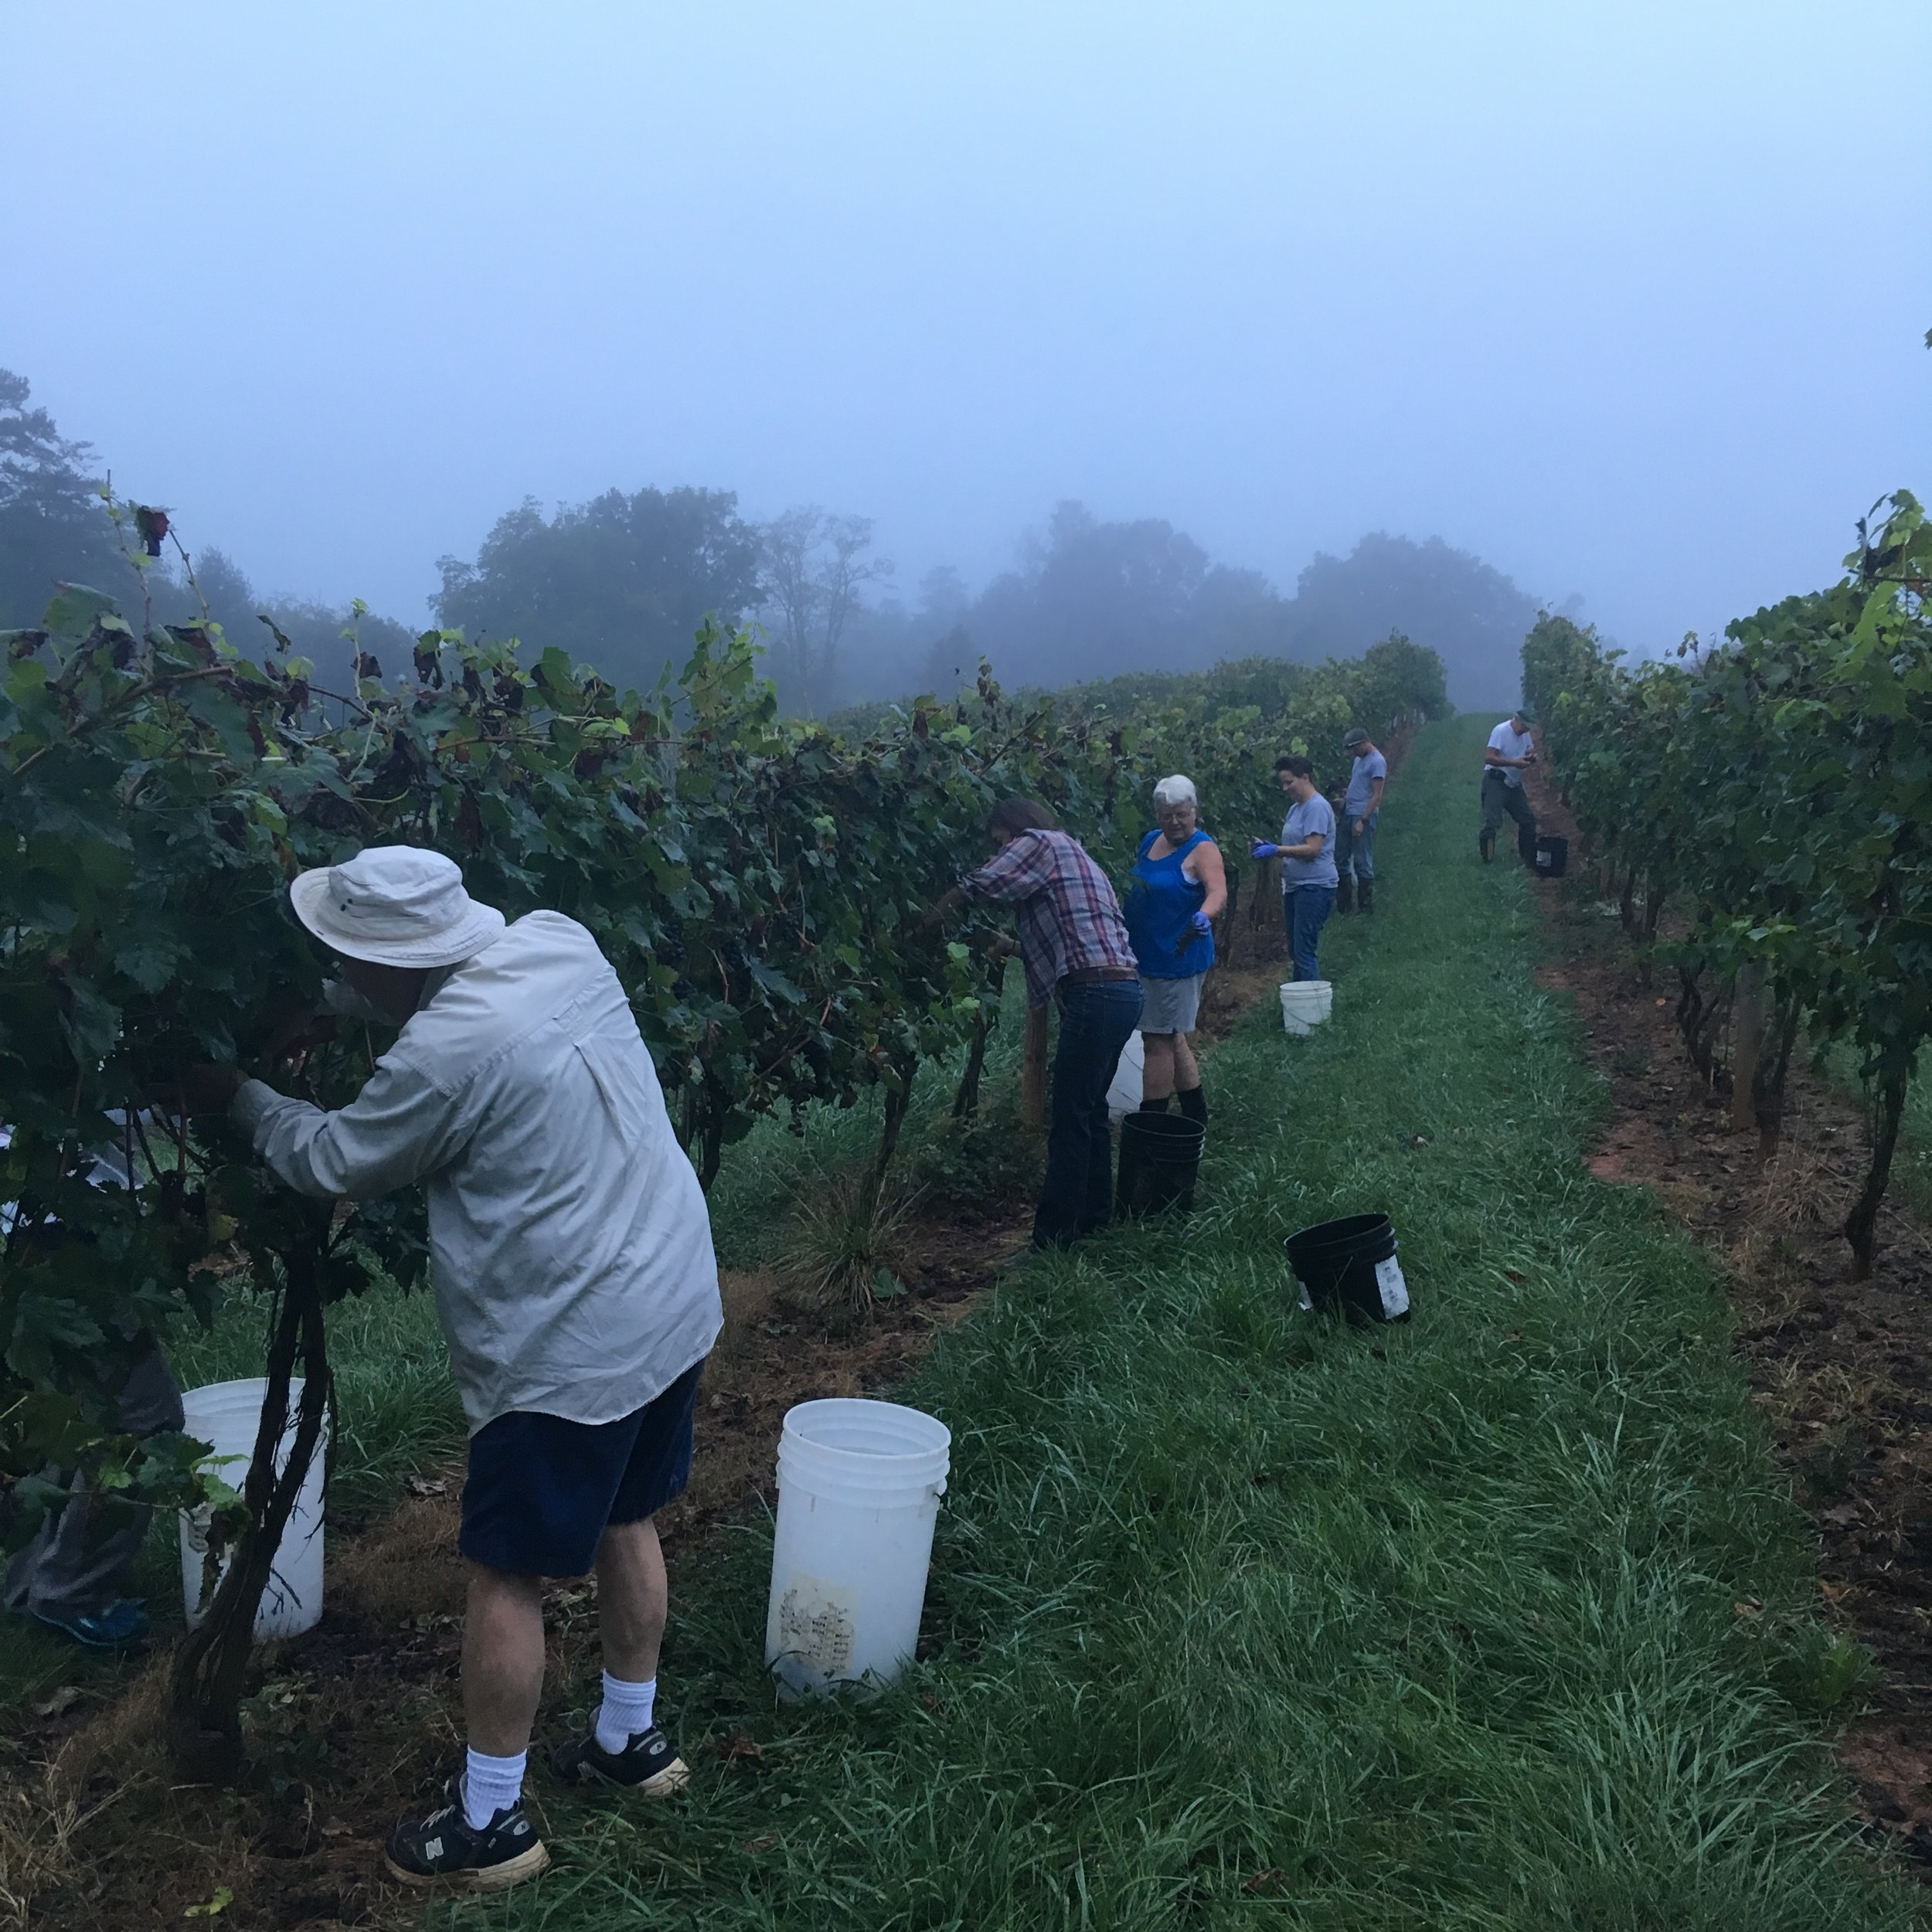 Foggy start to a harvest day